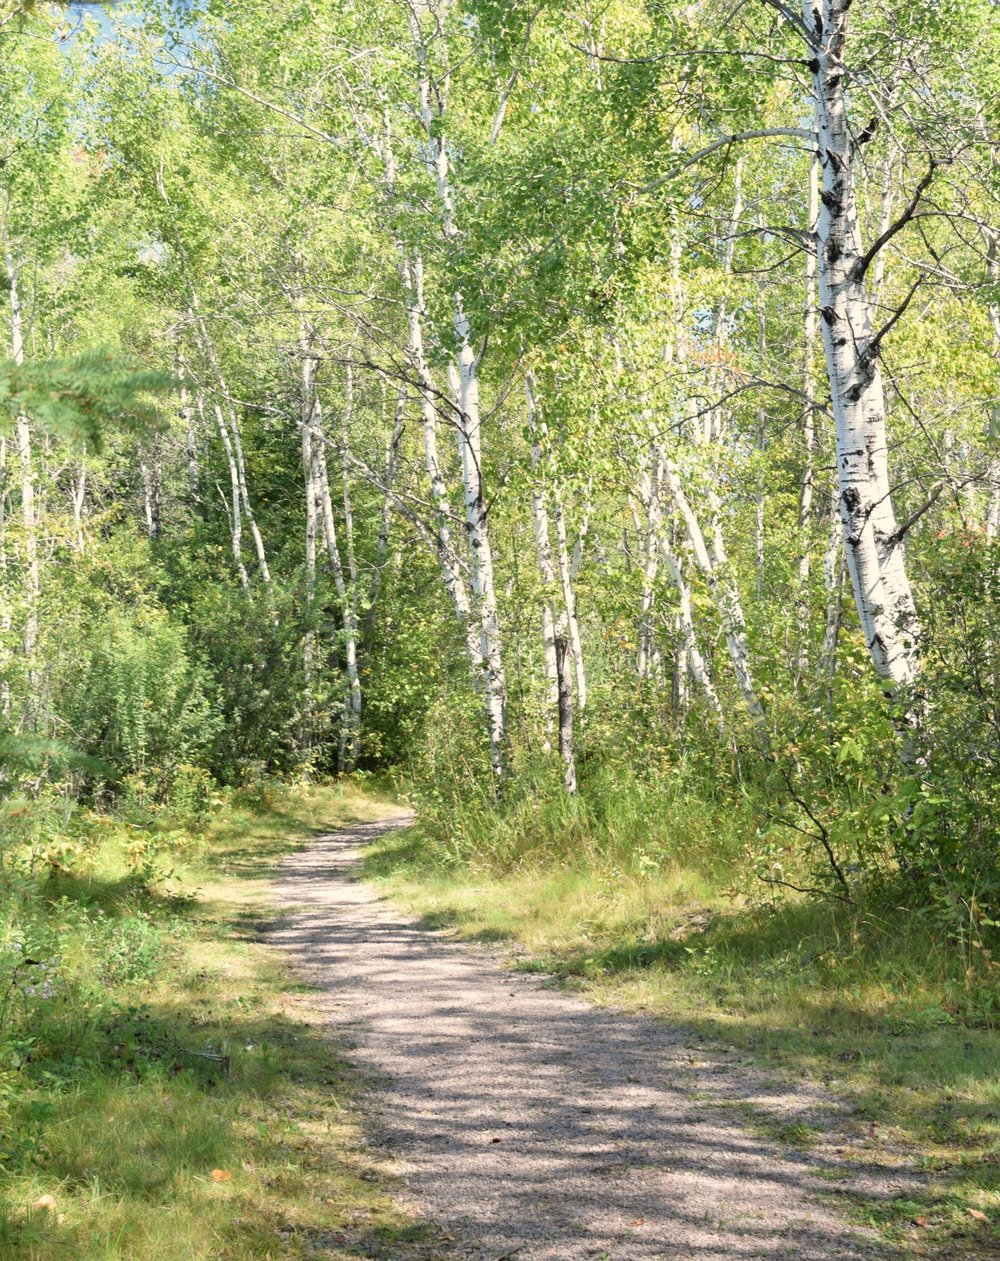 walking trail through forest of birch trees at nutimik lake